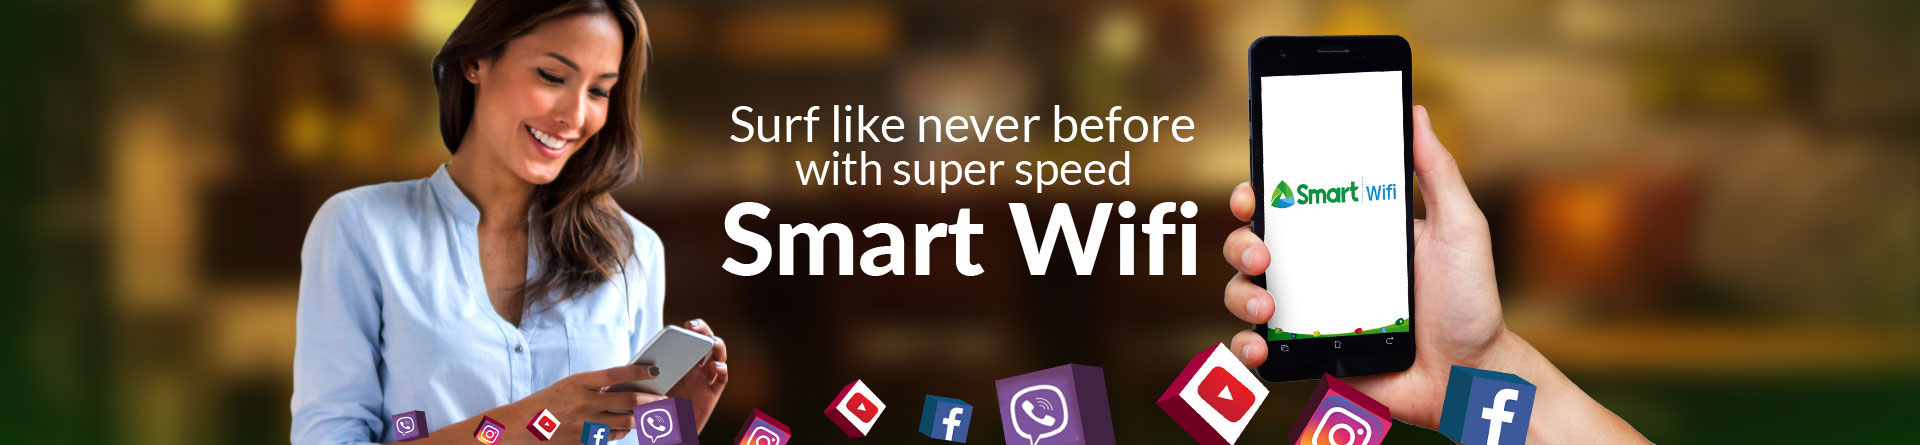 Surf like never before with Smart Wifi!